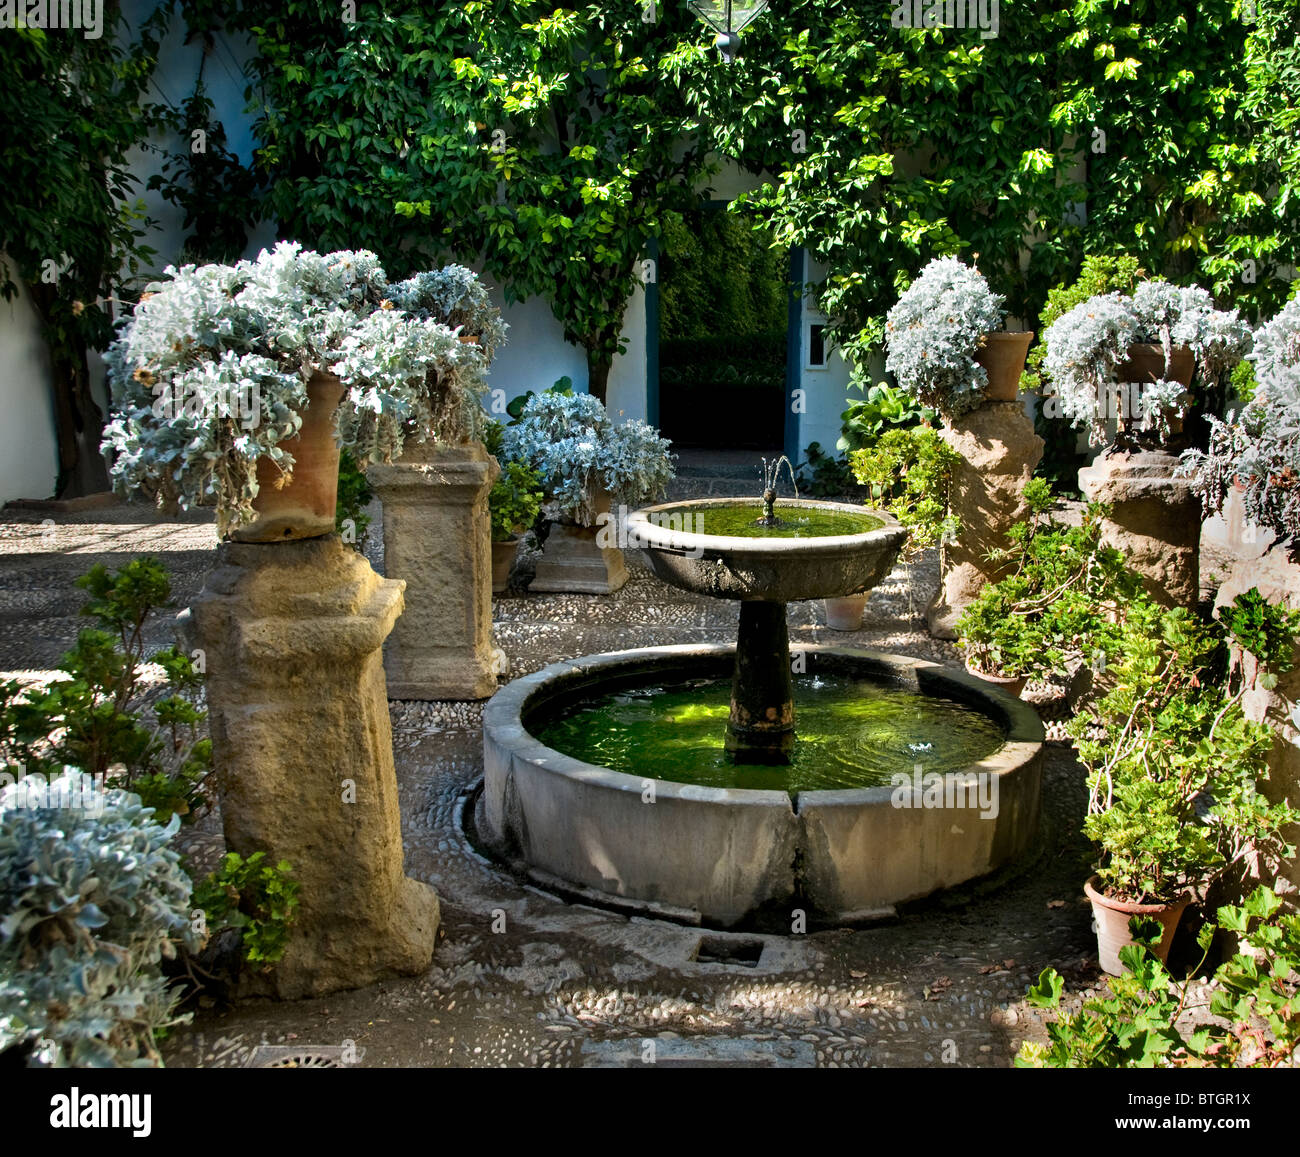 Spain Cordoba patio or courtyard of the Palace Palacio Marques de Viana - Stock Image